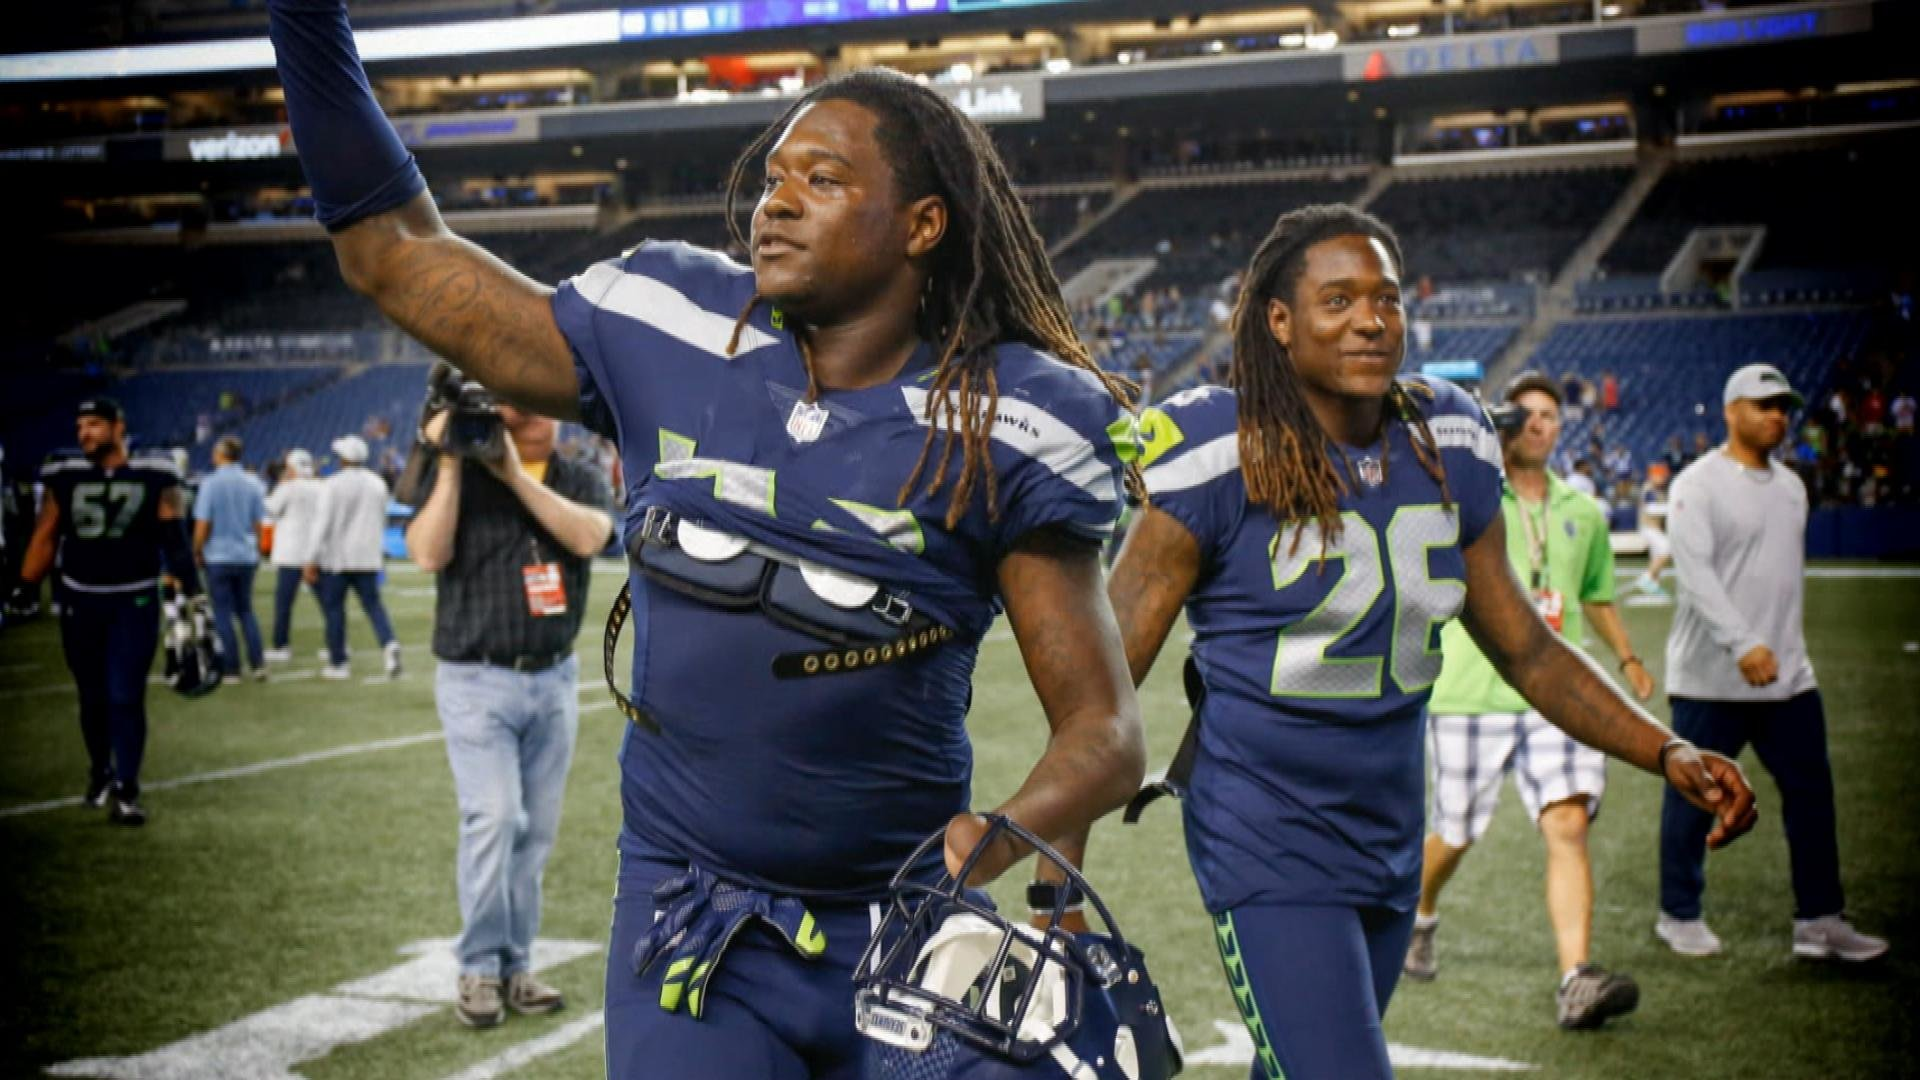 57a1b49198b Shaquem, Shaquill Griffin make history with Seattle Seahawks | NBC Sports